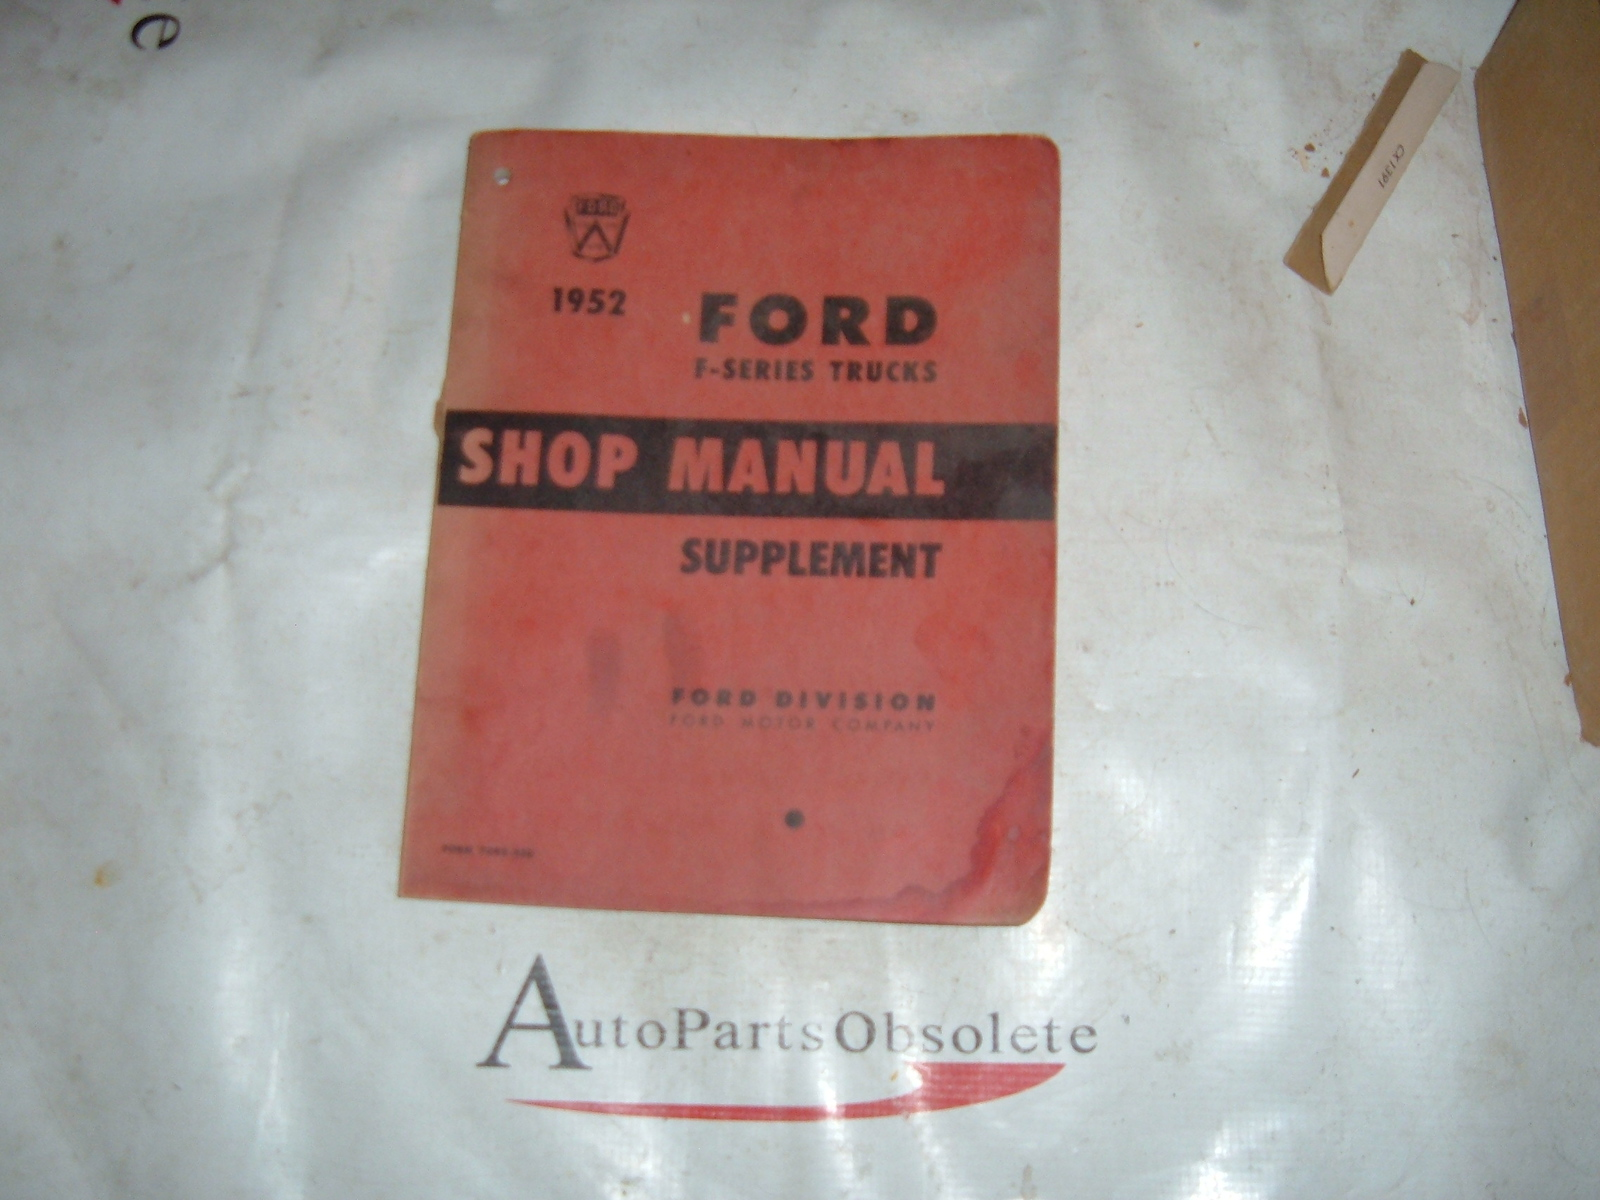 1952 ford pickup truck shop manual supplement original print (z 52 fordtruckbook)